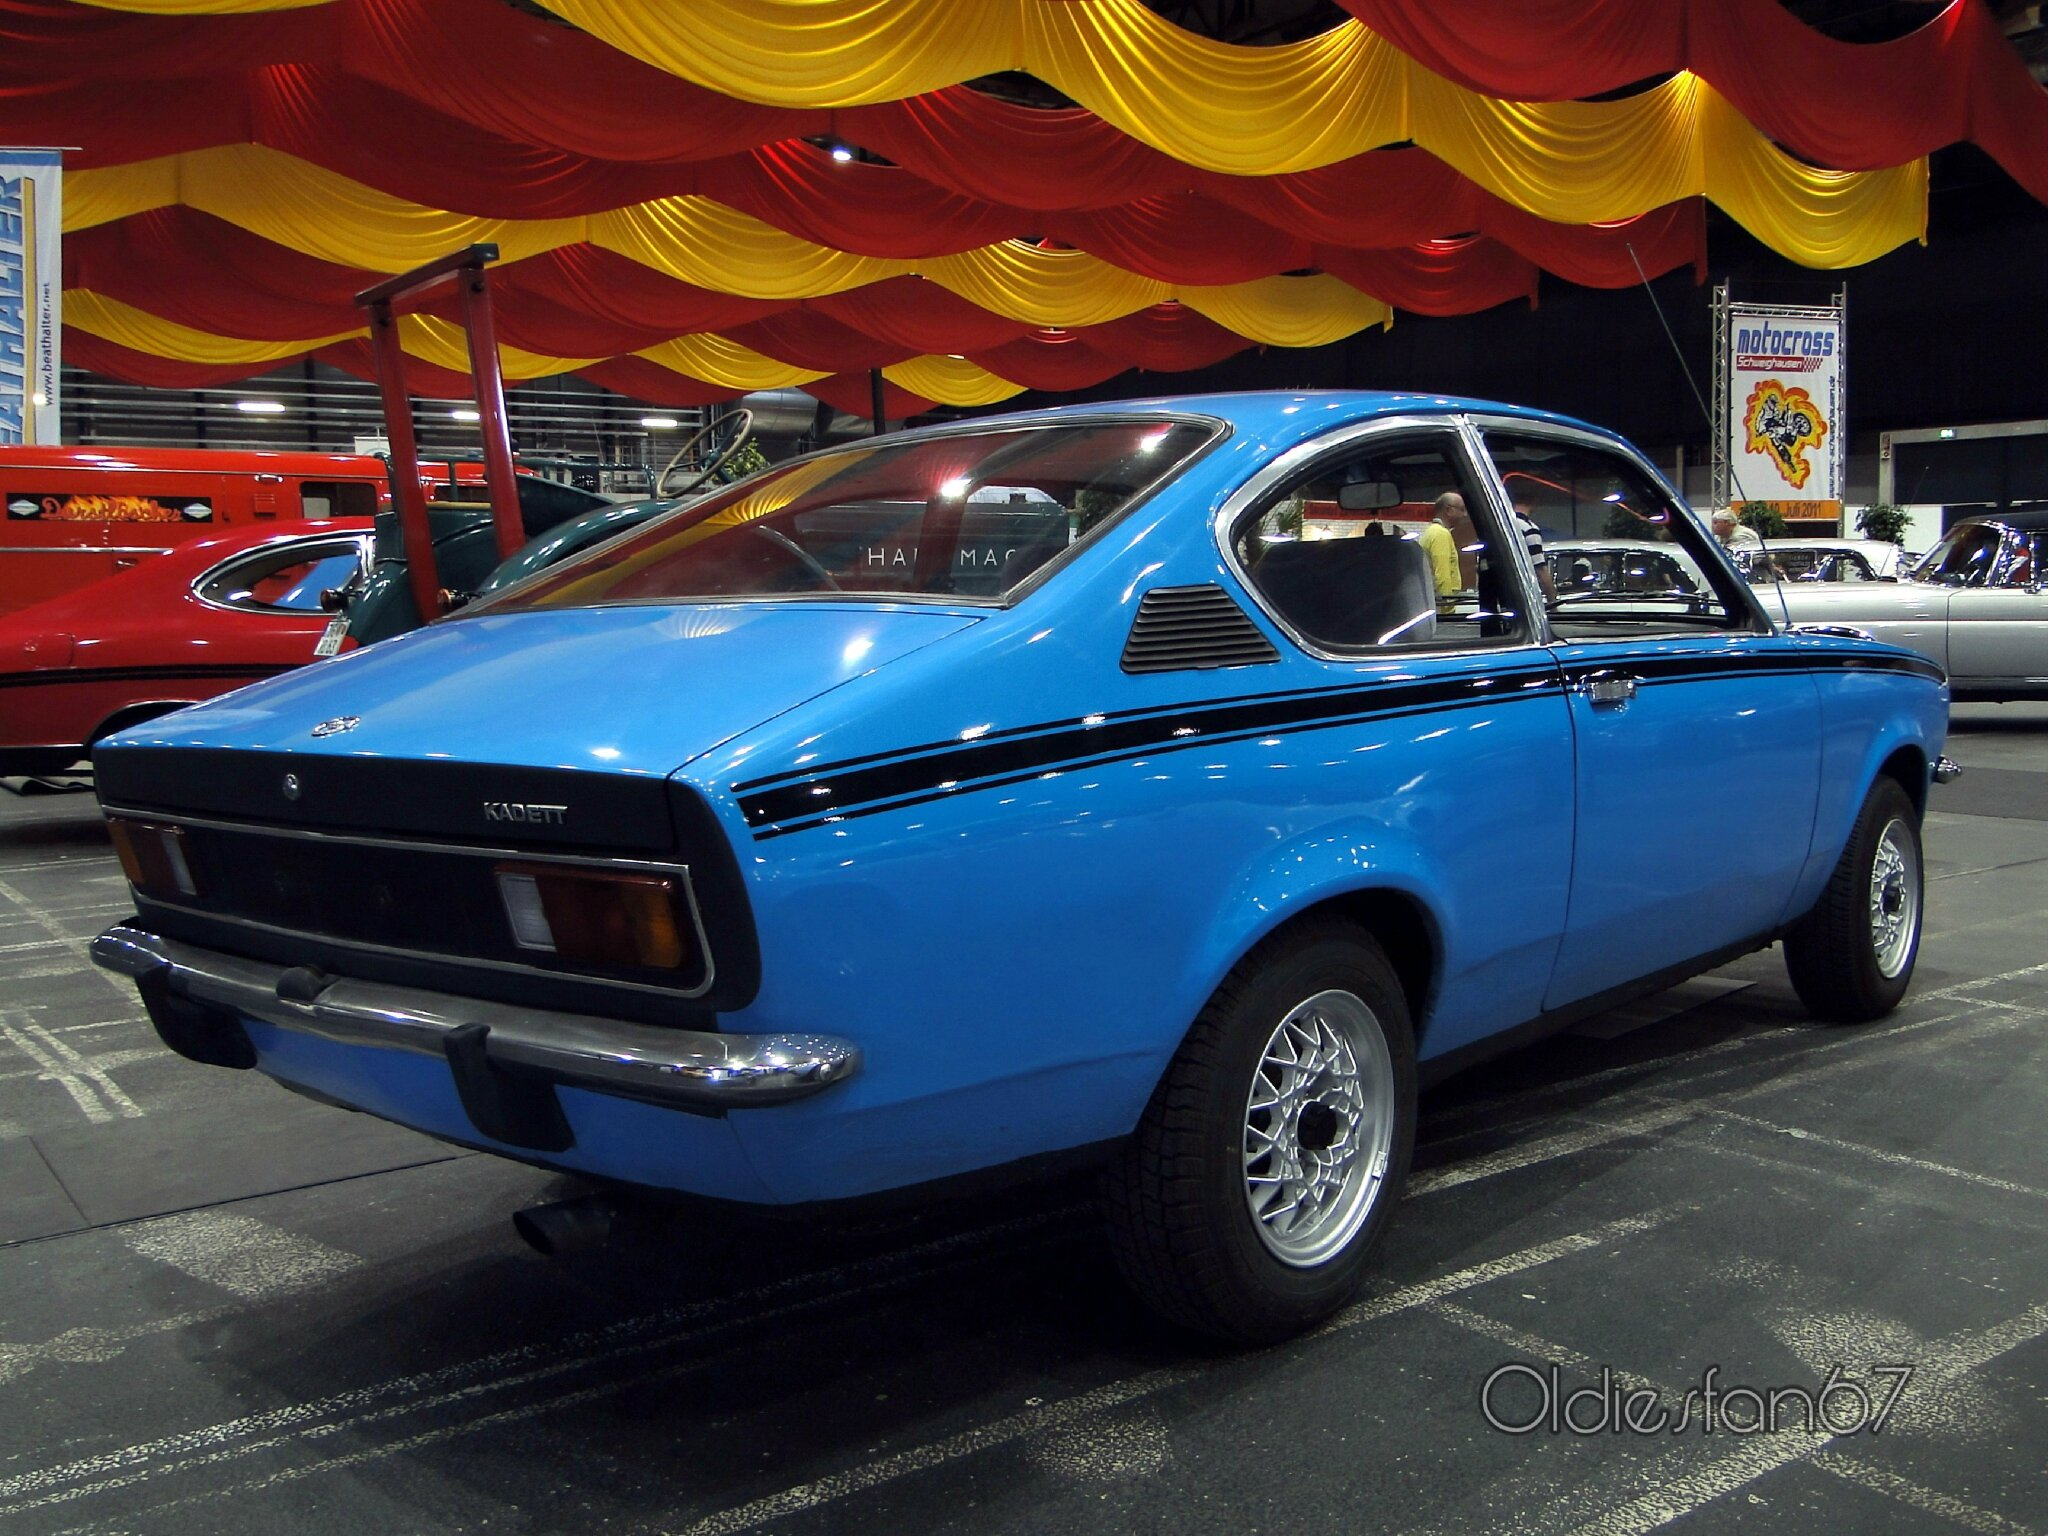 opel kadett c coupe 1973 oldiesfan67 mon blog auto. Black Bedroom Furniture Sets. Home Design Ideas